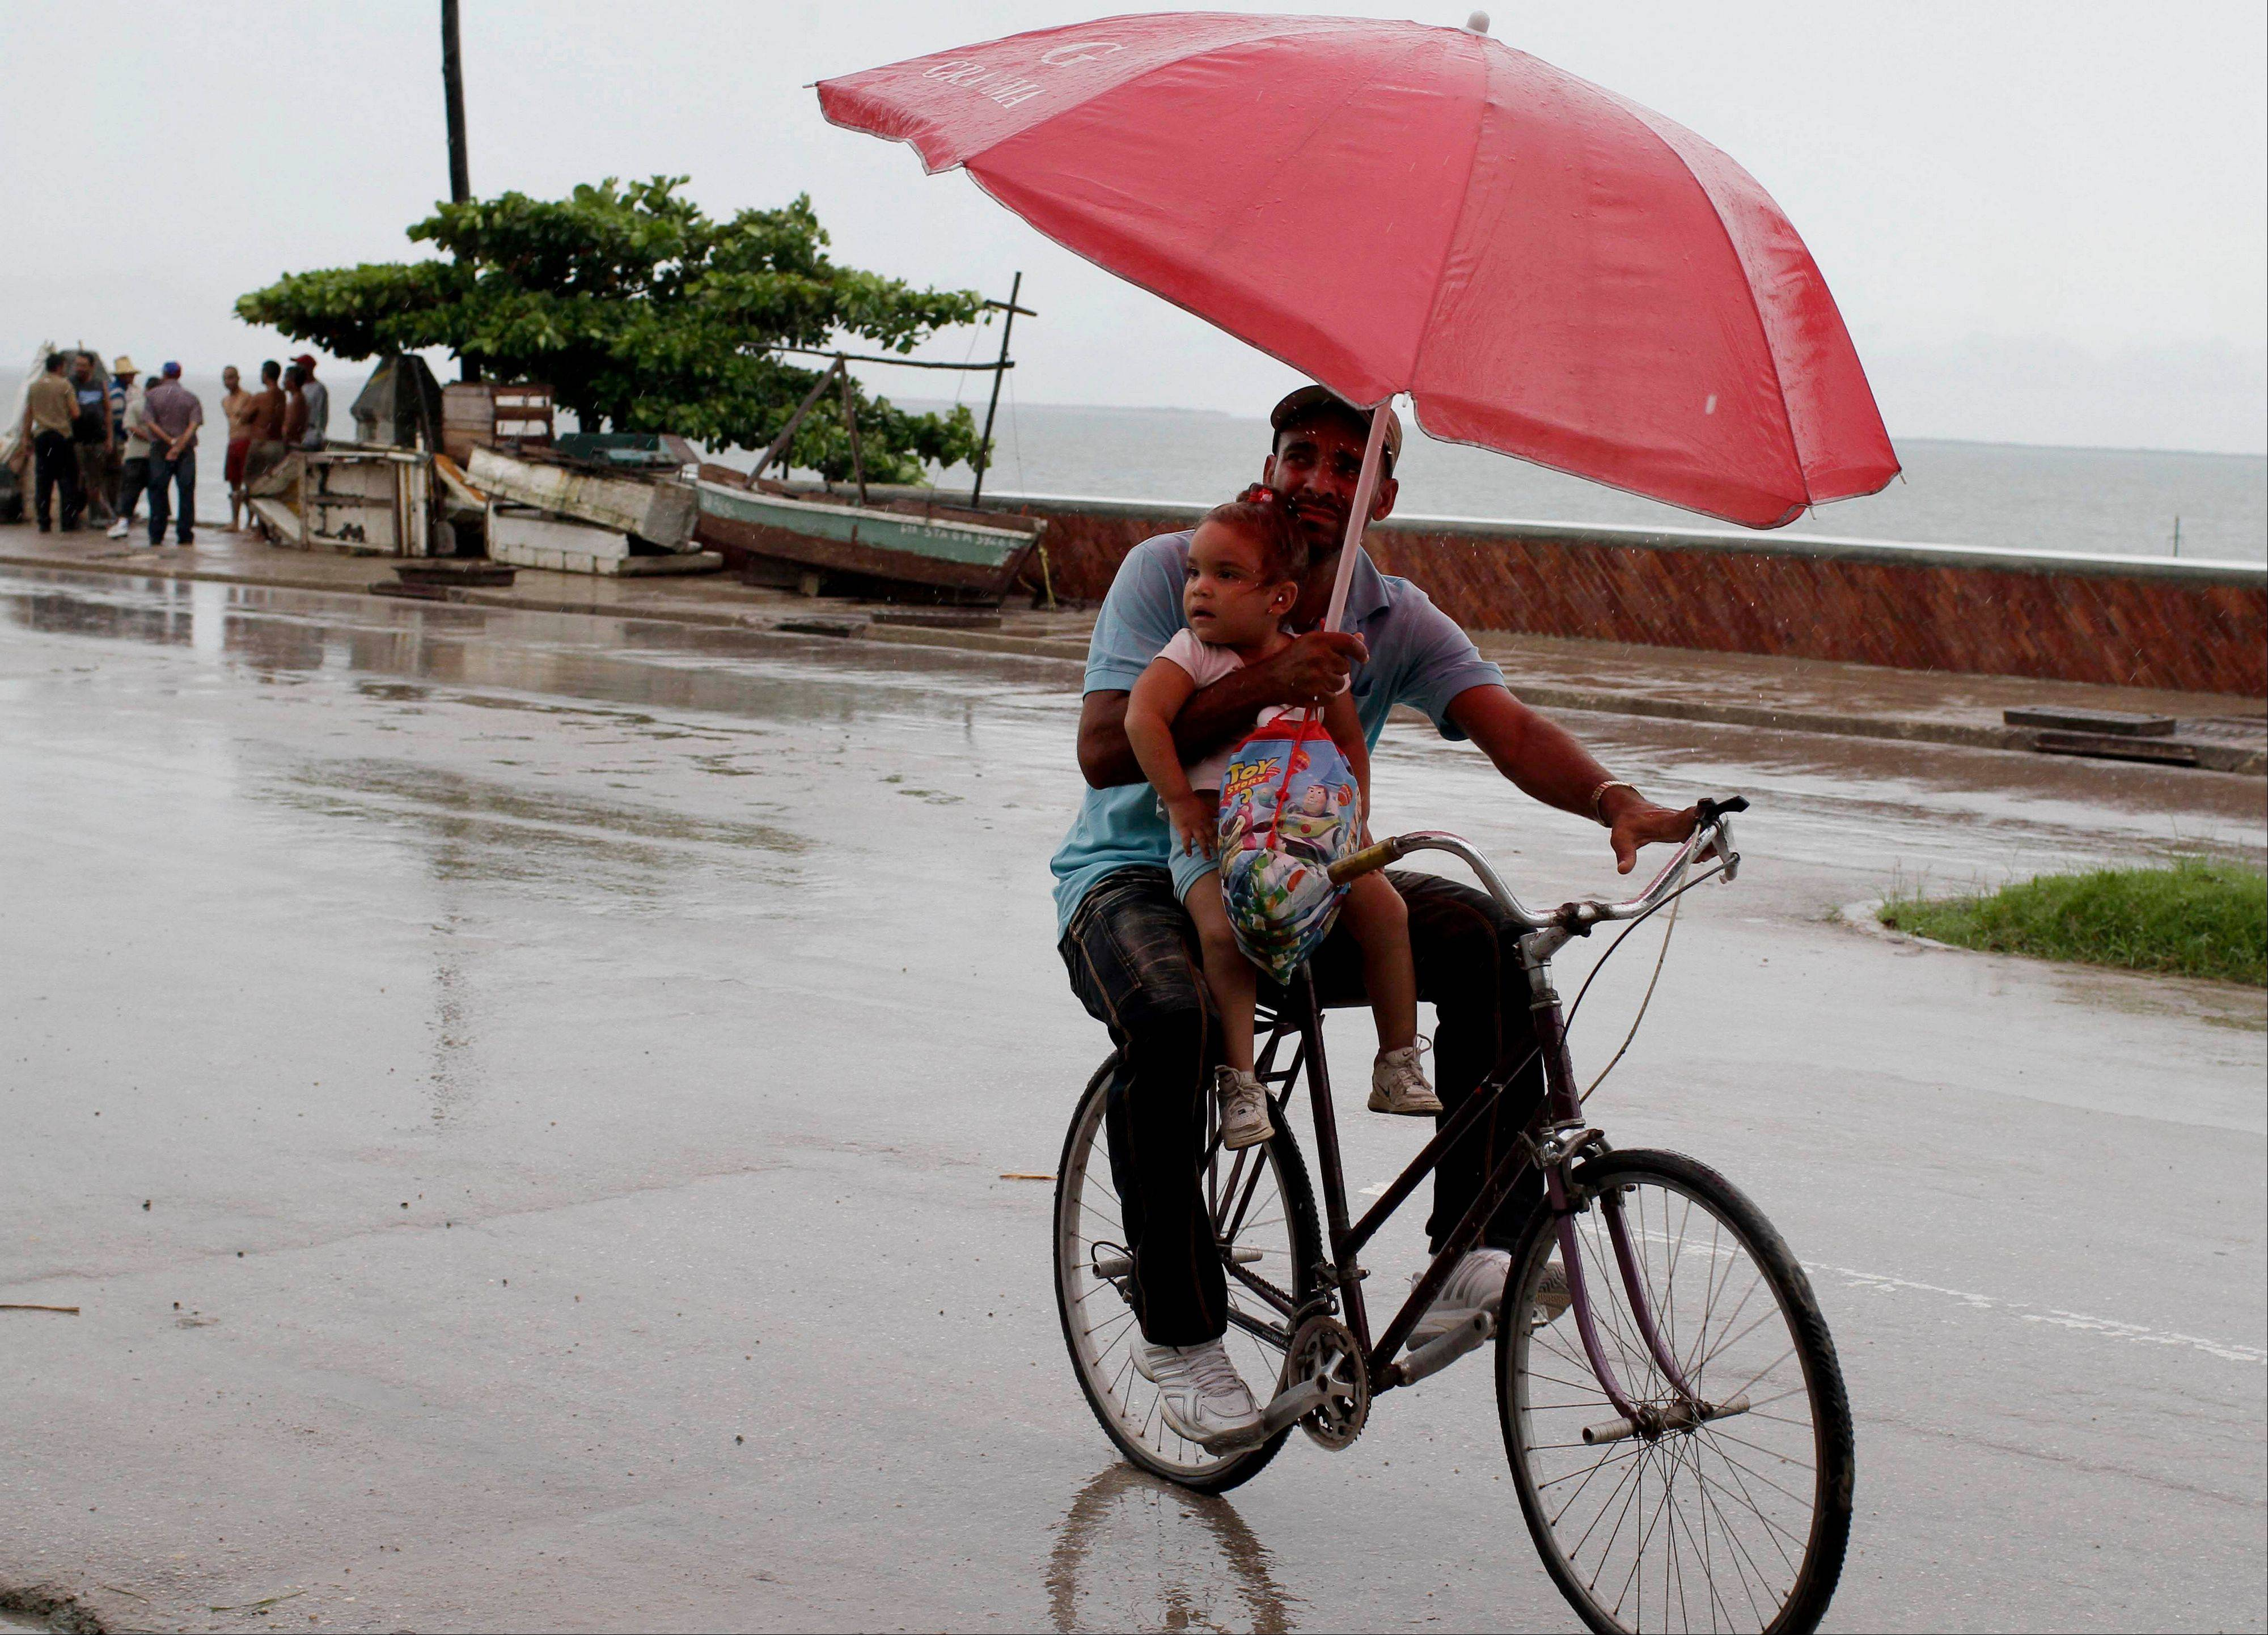 A man balances a child and umbrella on his bike as it rains during the approach of Hurricane Sandy in Manzanillo, Cuba, Wednesday.